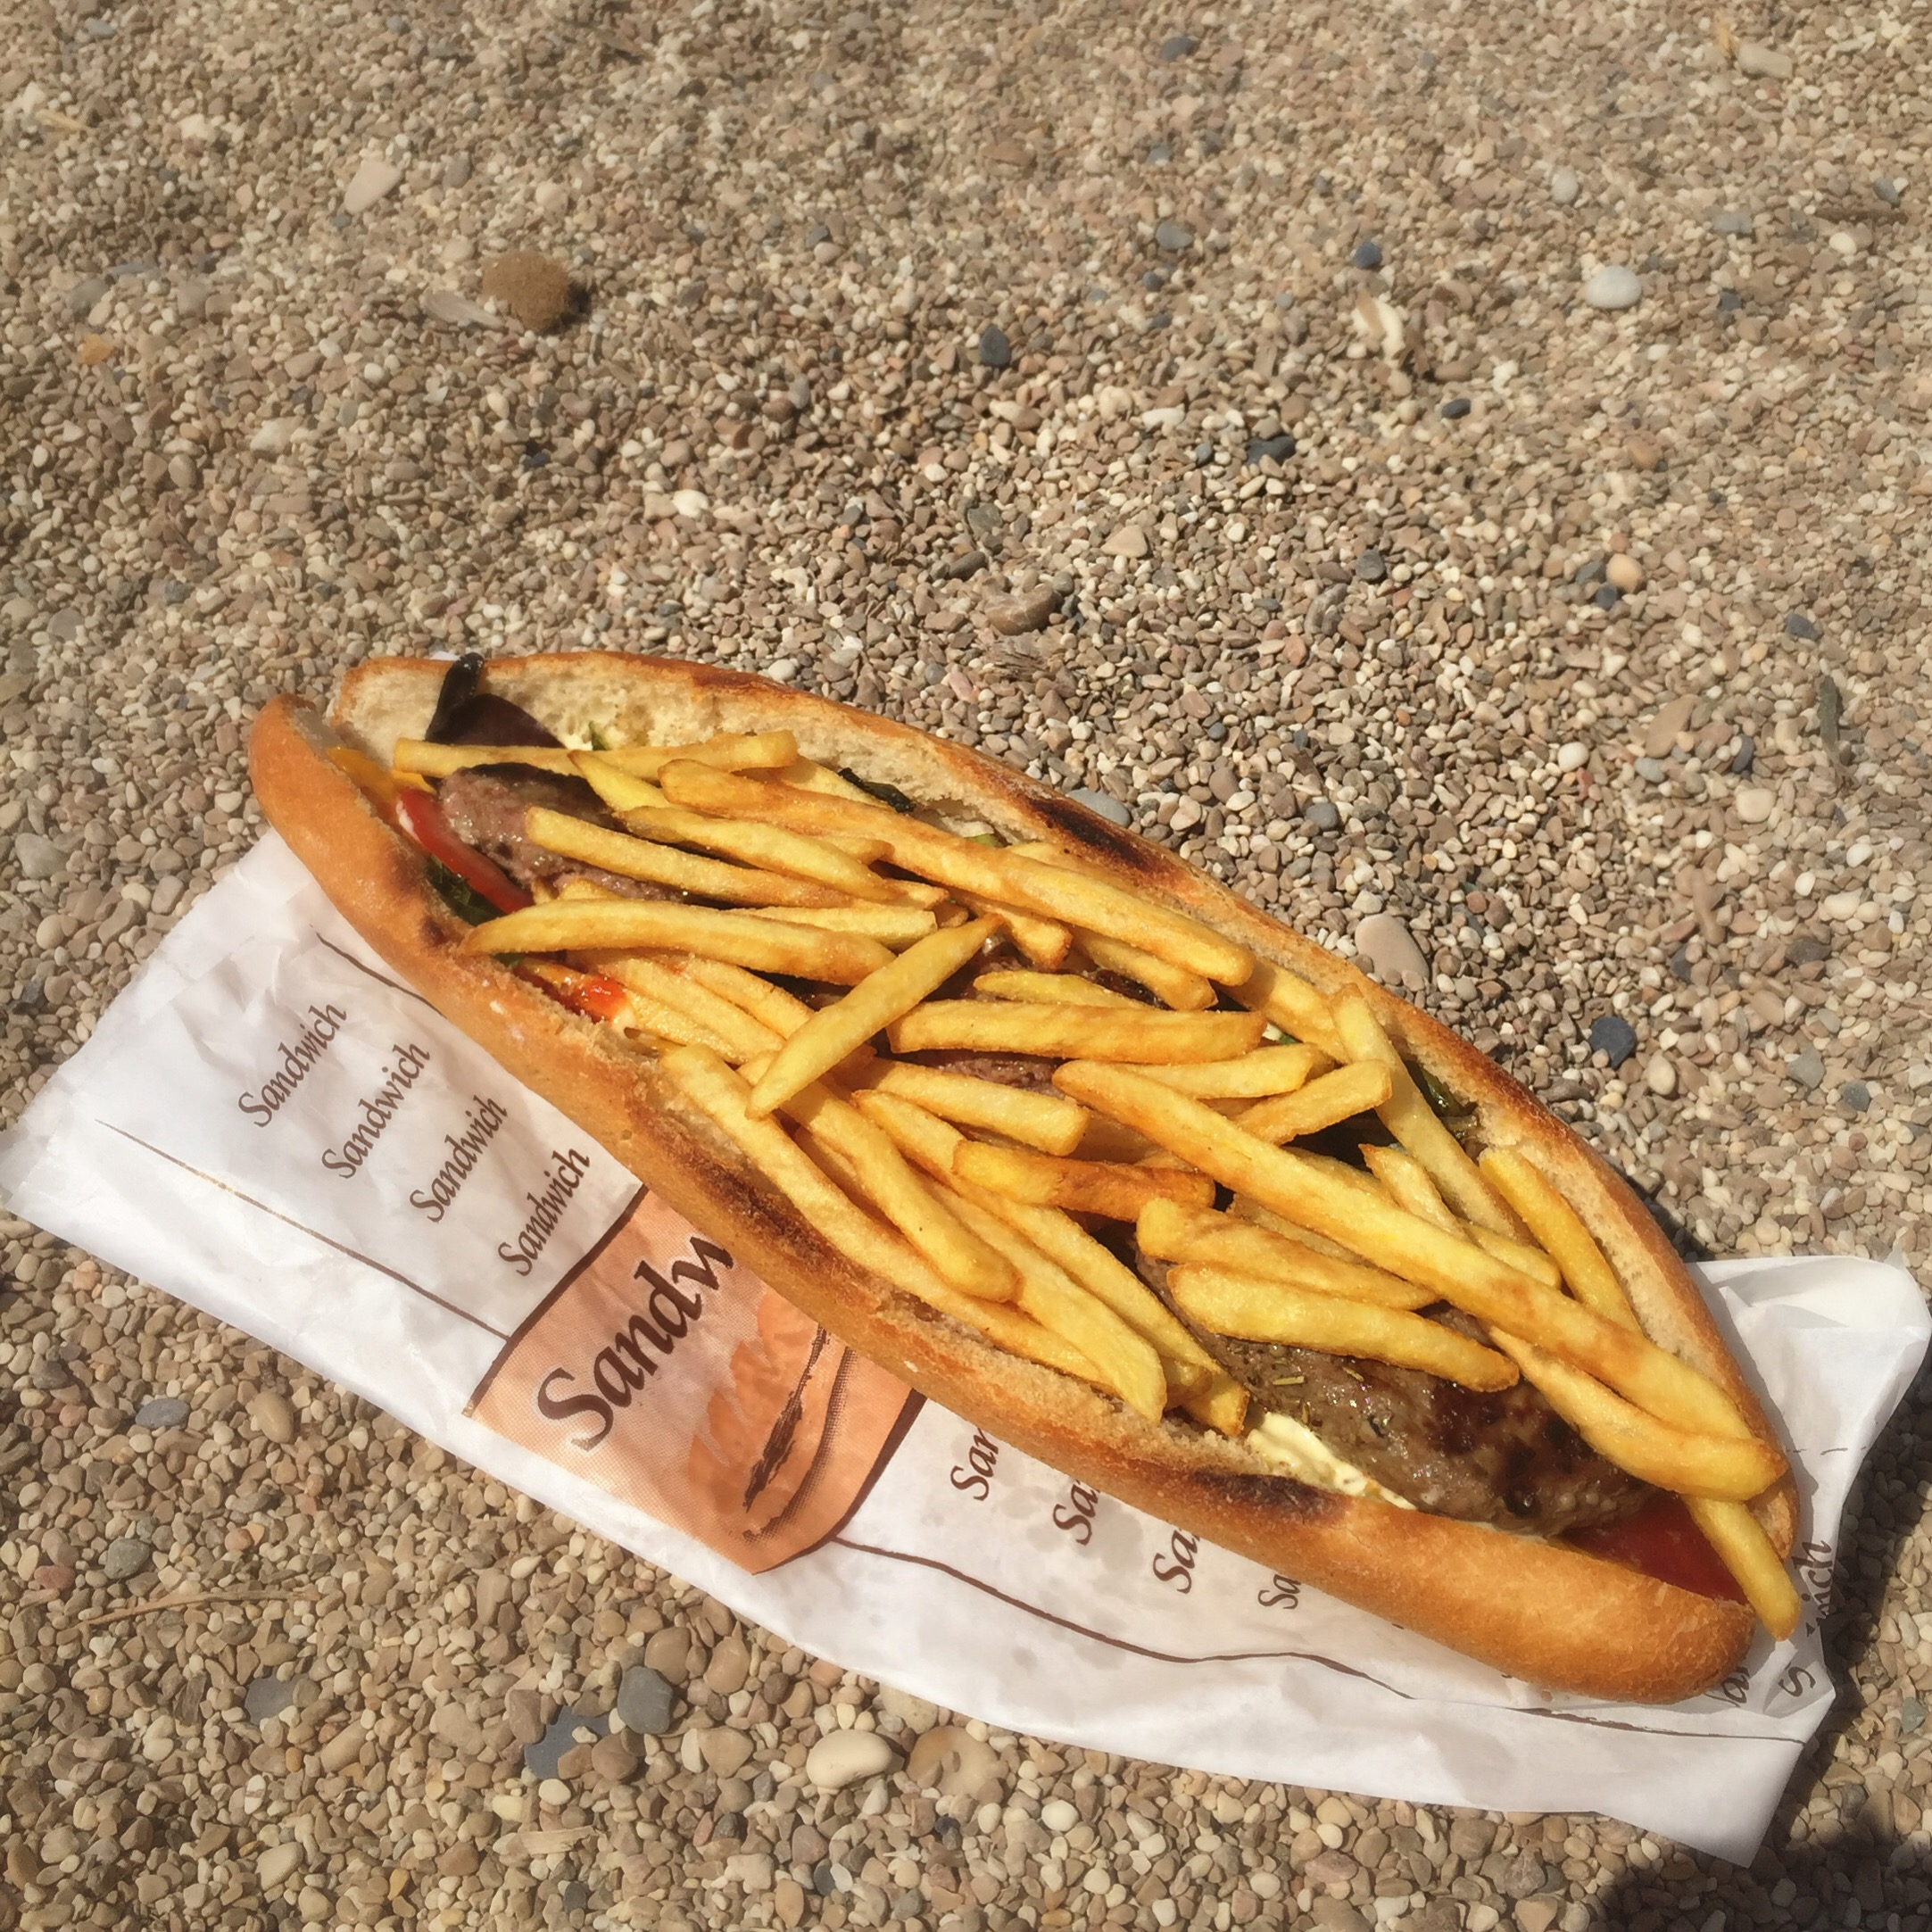 France Foods They Eat Lounge Beach Villefranche Sur Mer American Sandwich French